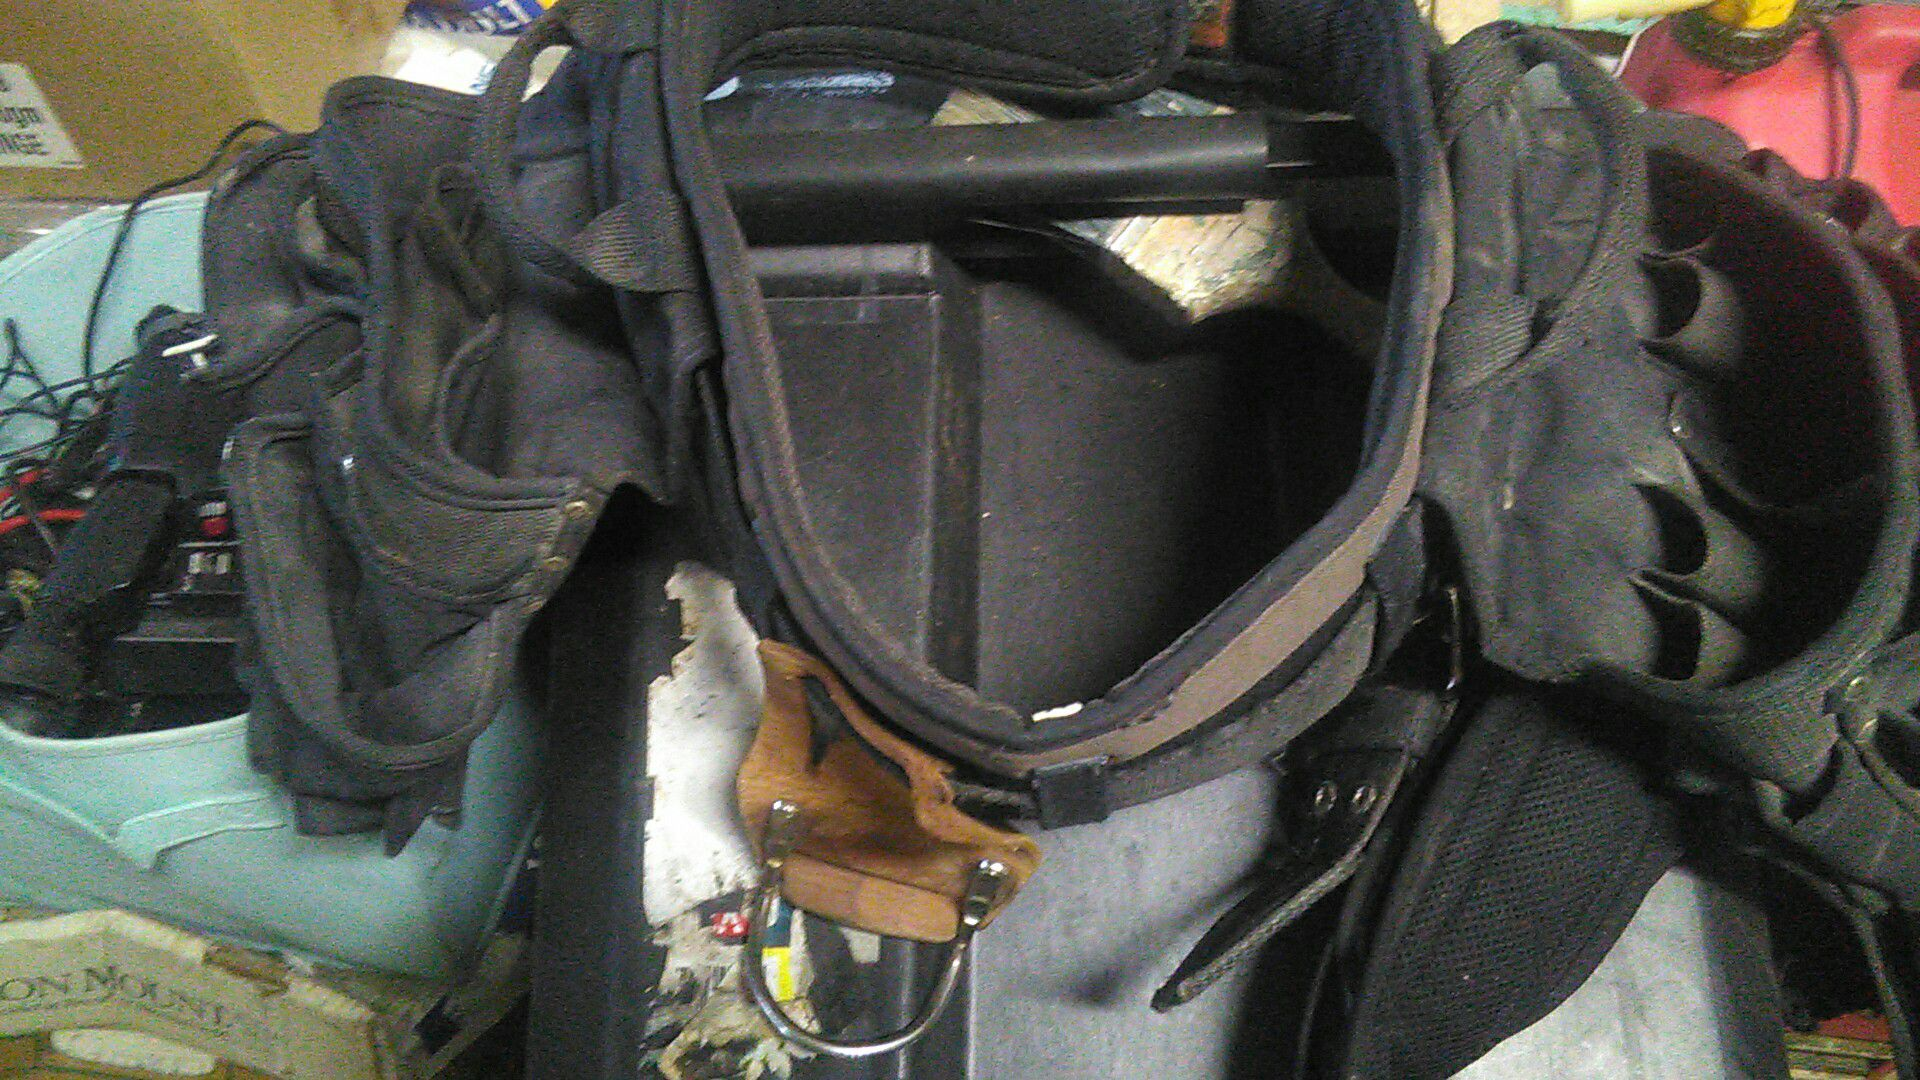 Tool bags and belts